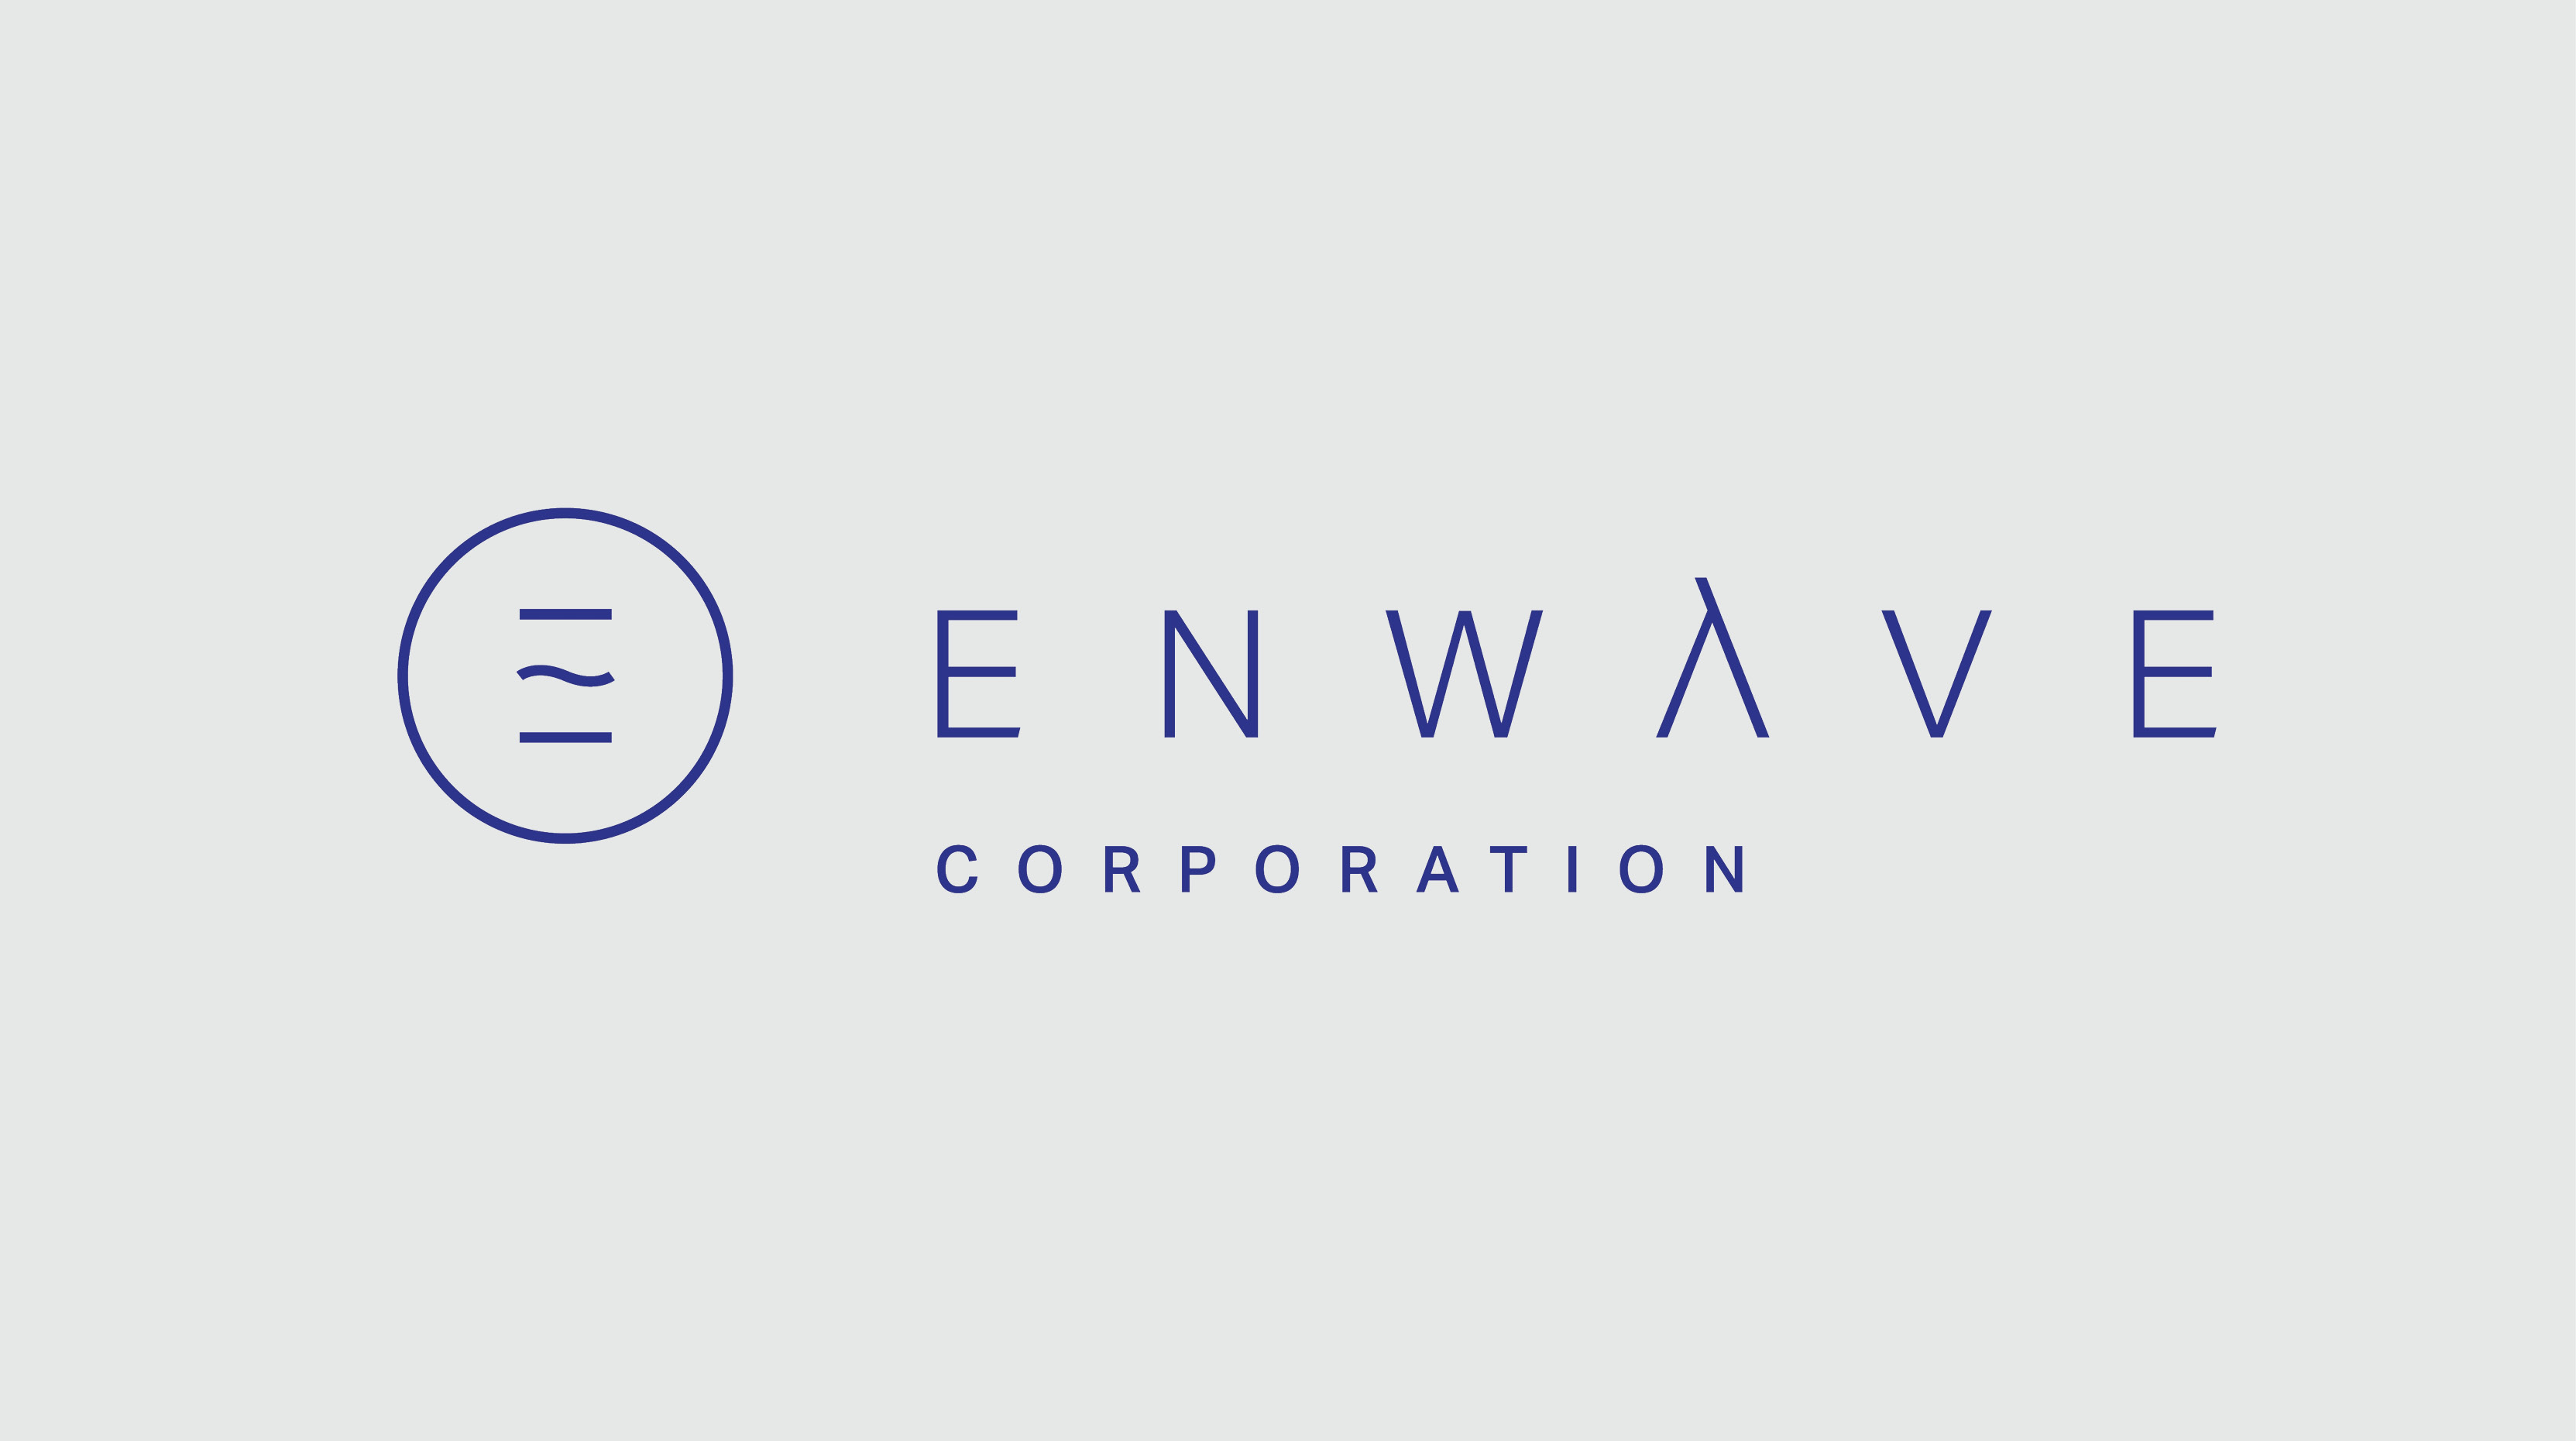 EnWave Enhances Global Installation Capabilities and Completes Successful Remote Commissioning of 10kW Machine with Icelandic Partner